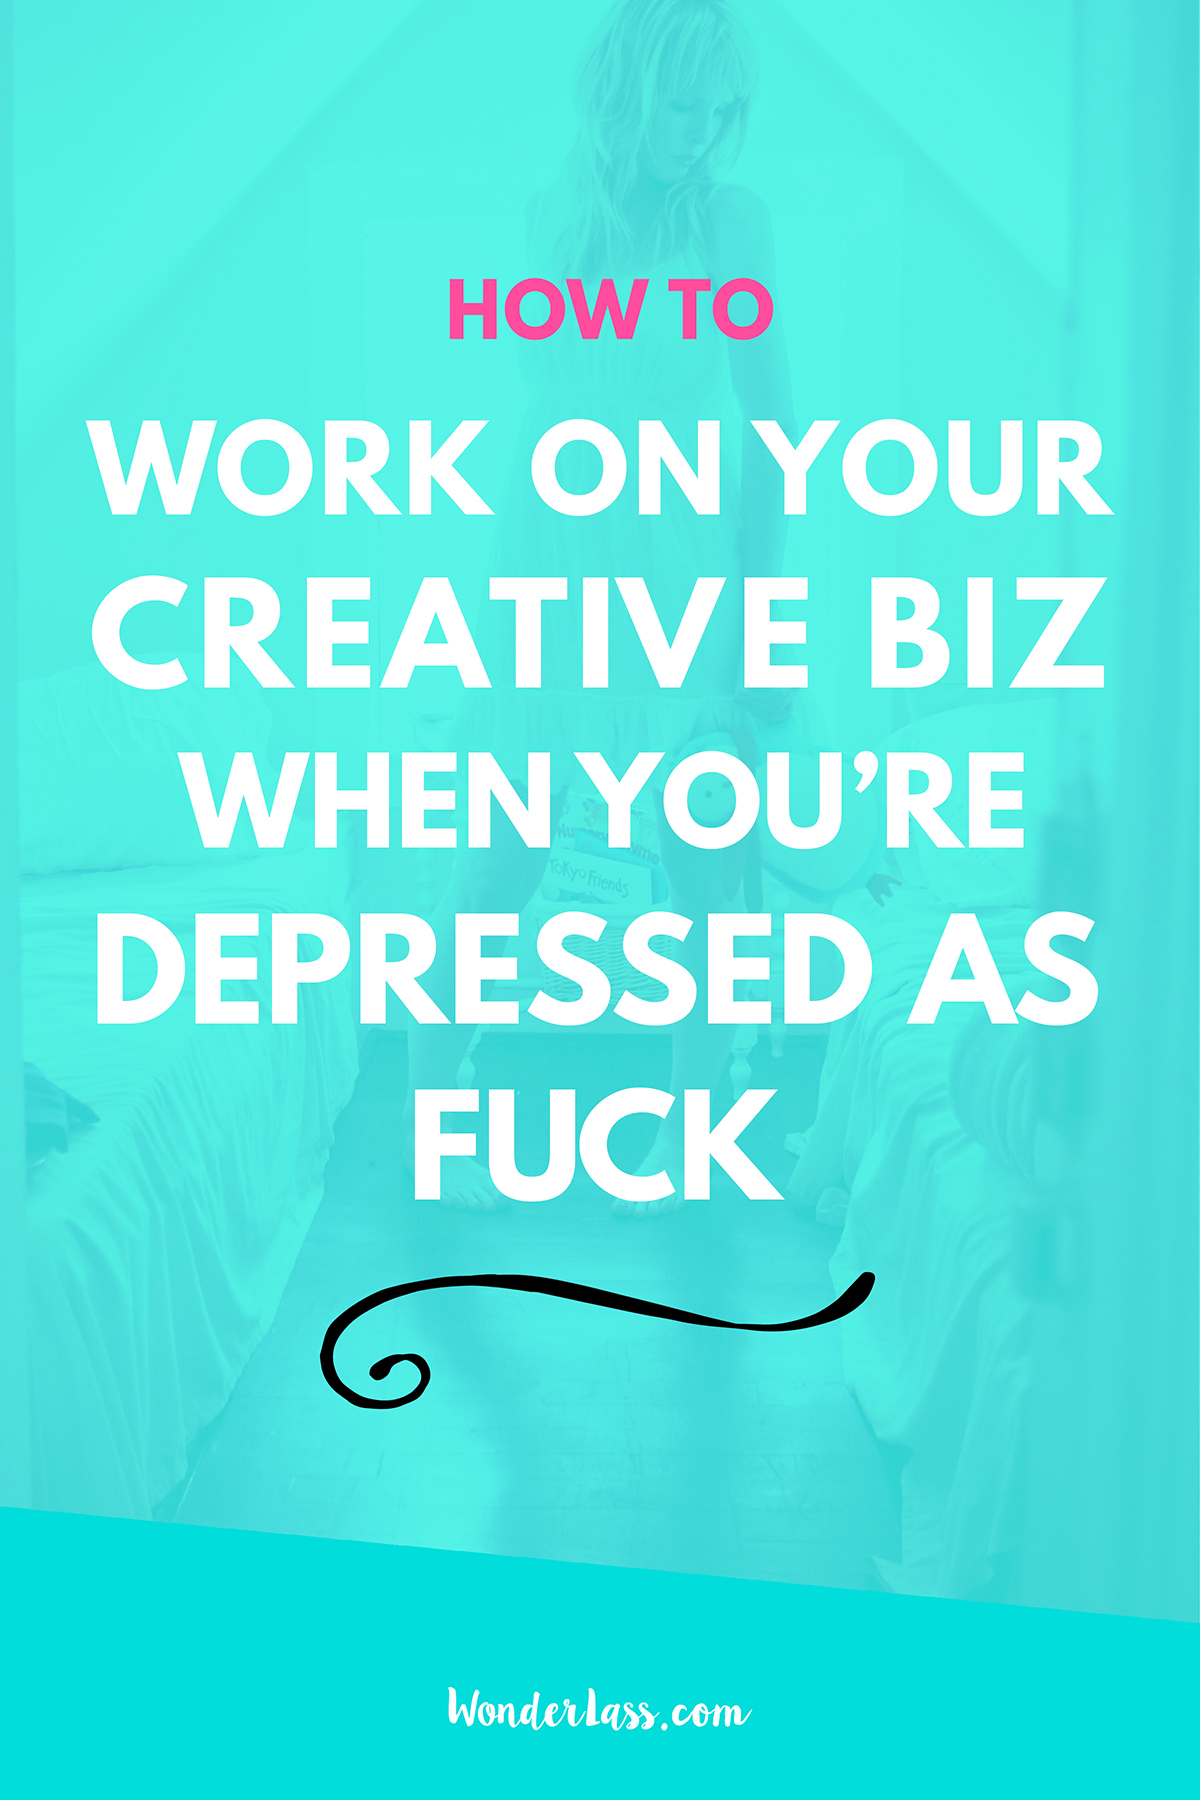 How to Work on Your Creative Business When You're Depressed as Fuck   How to deal with depression as an entrepreneur   Wonderlass